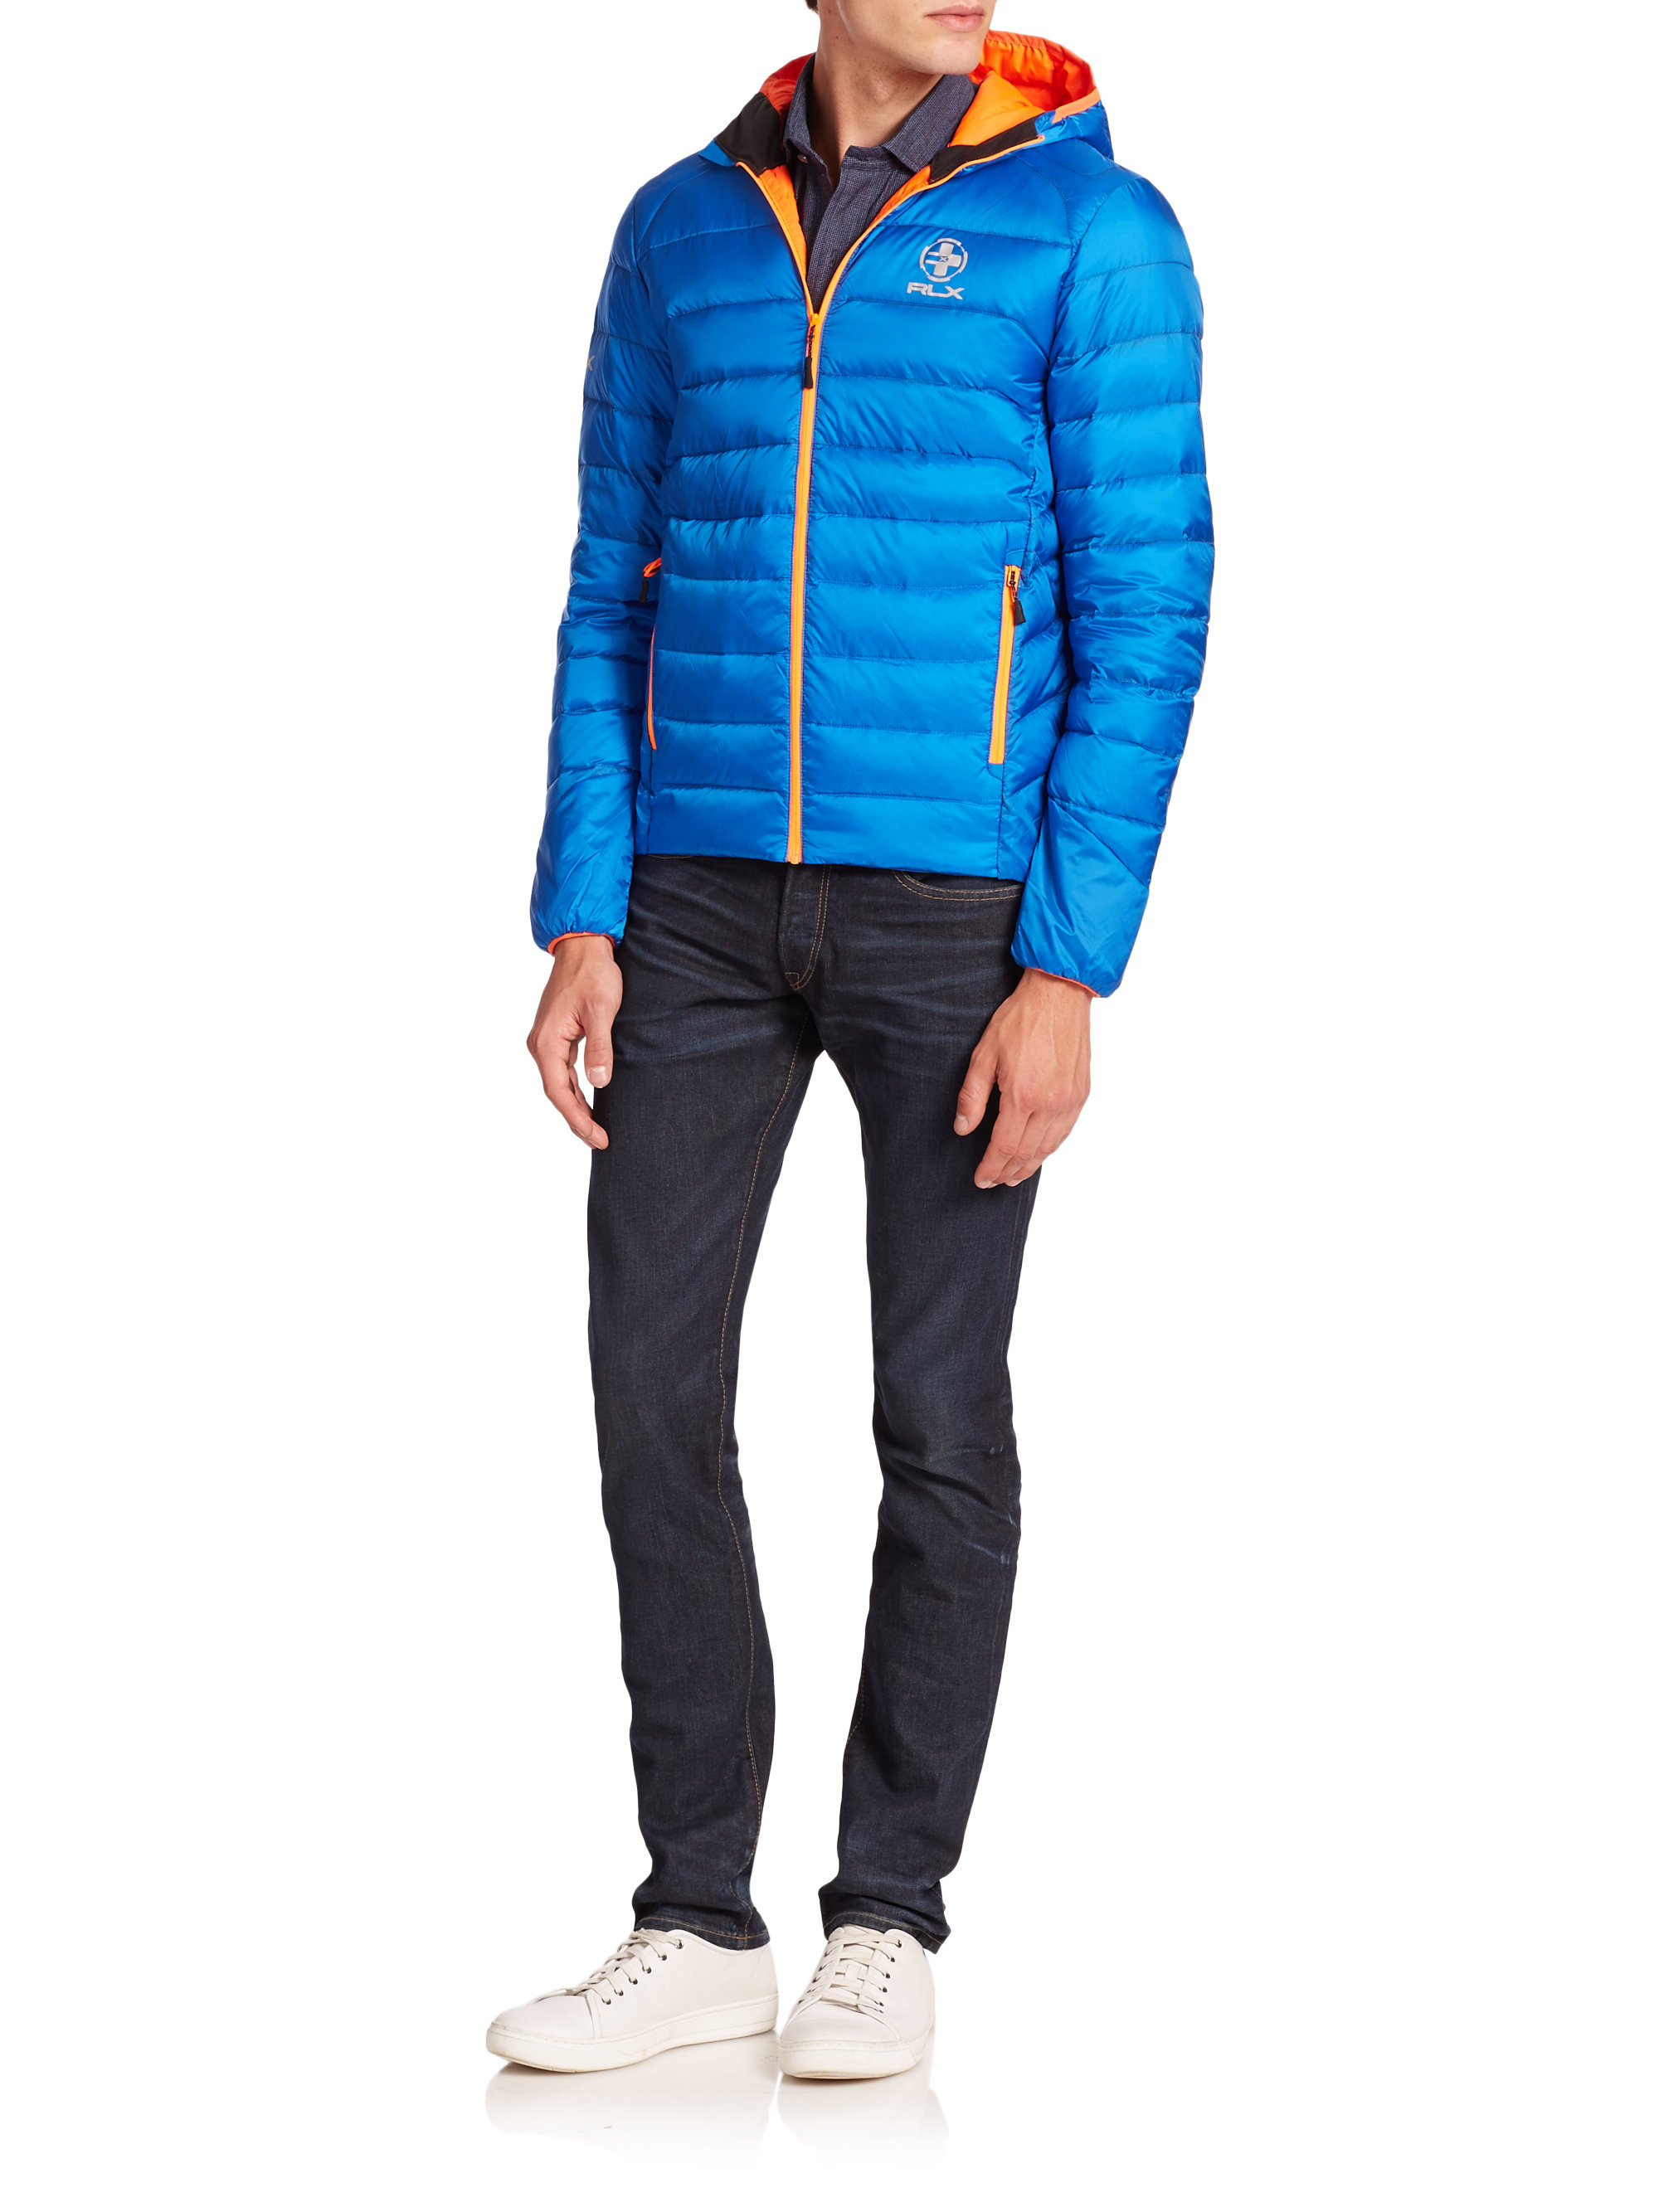 Polo Ralph Lauren Global Explorer Down Jacket In Blue For